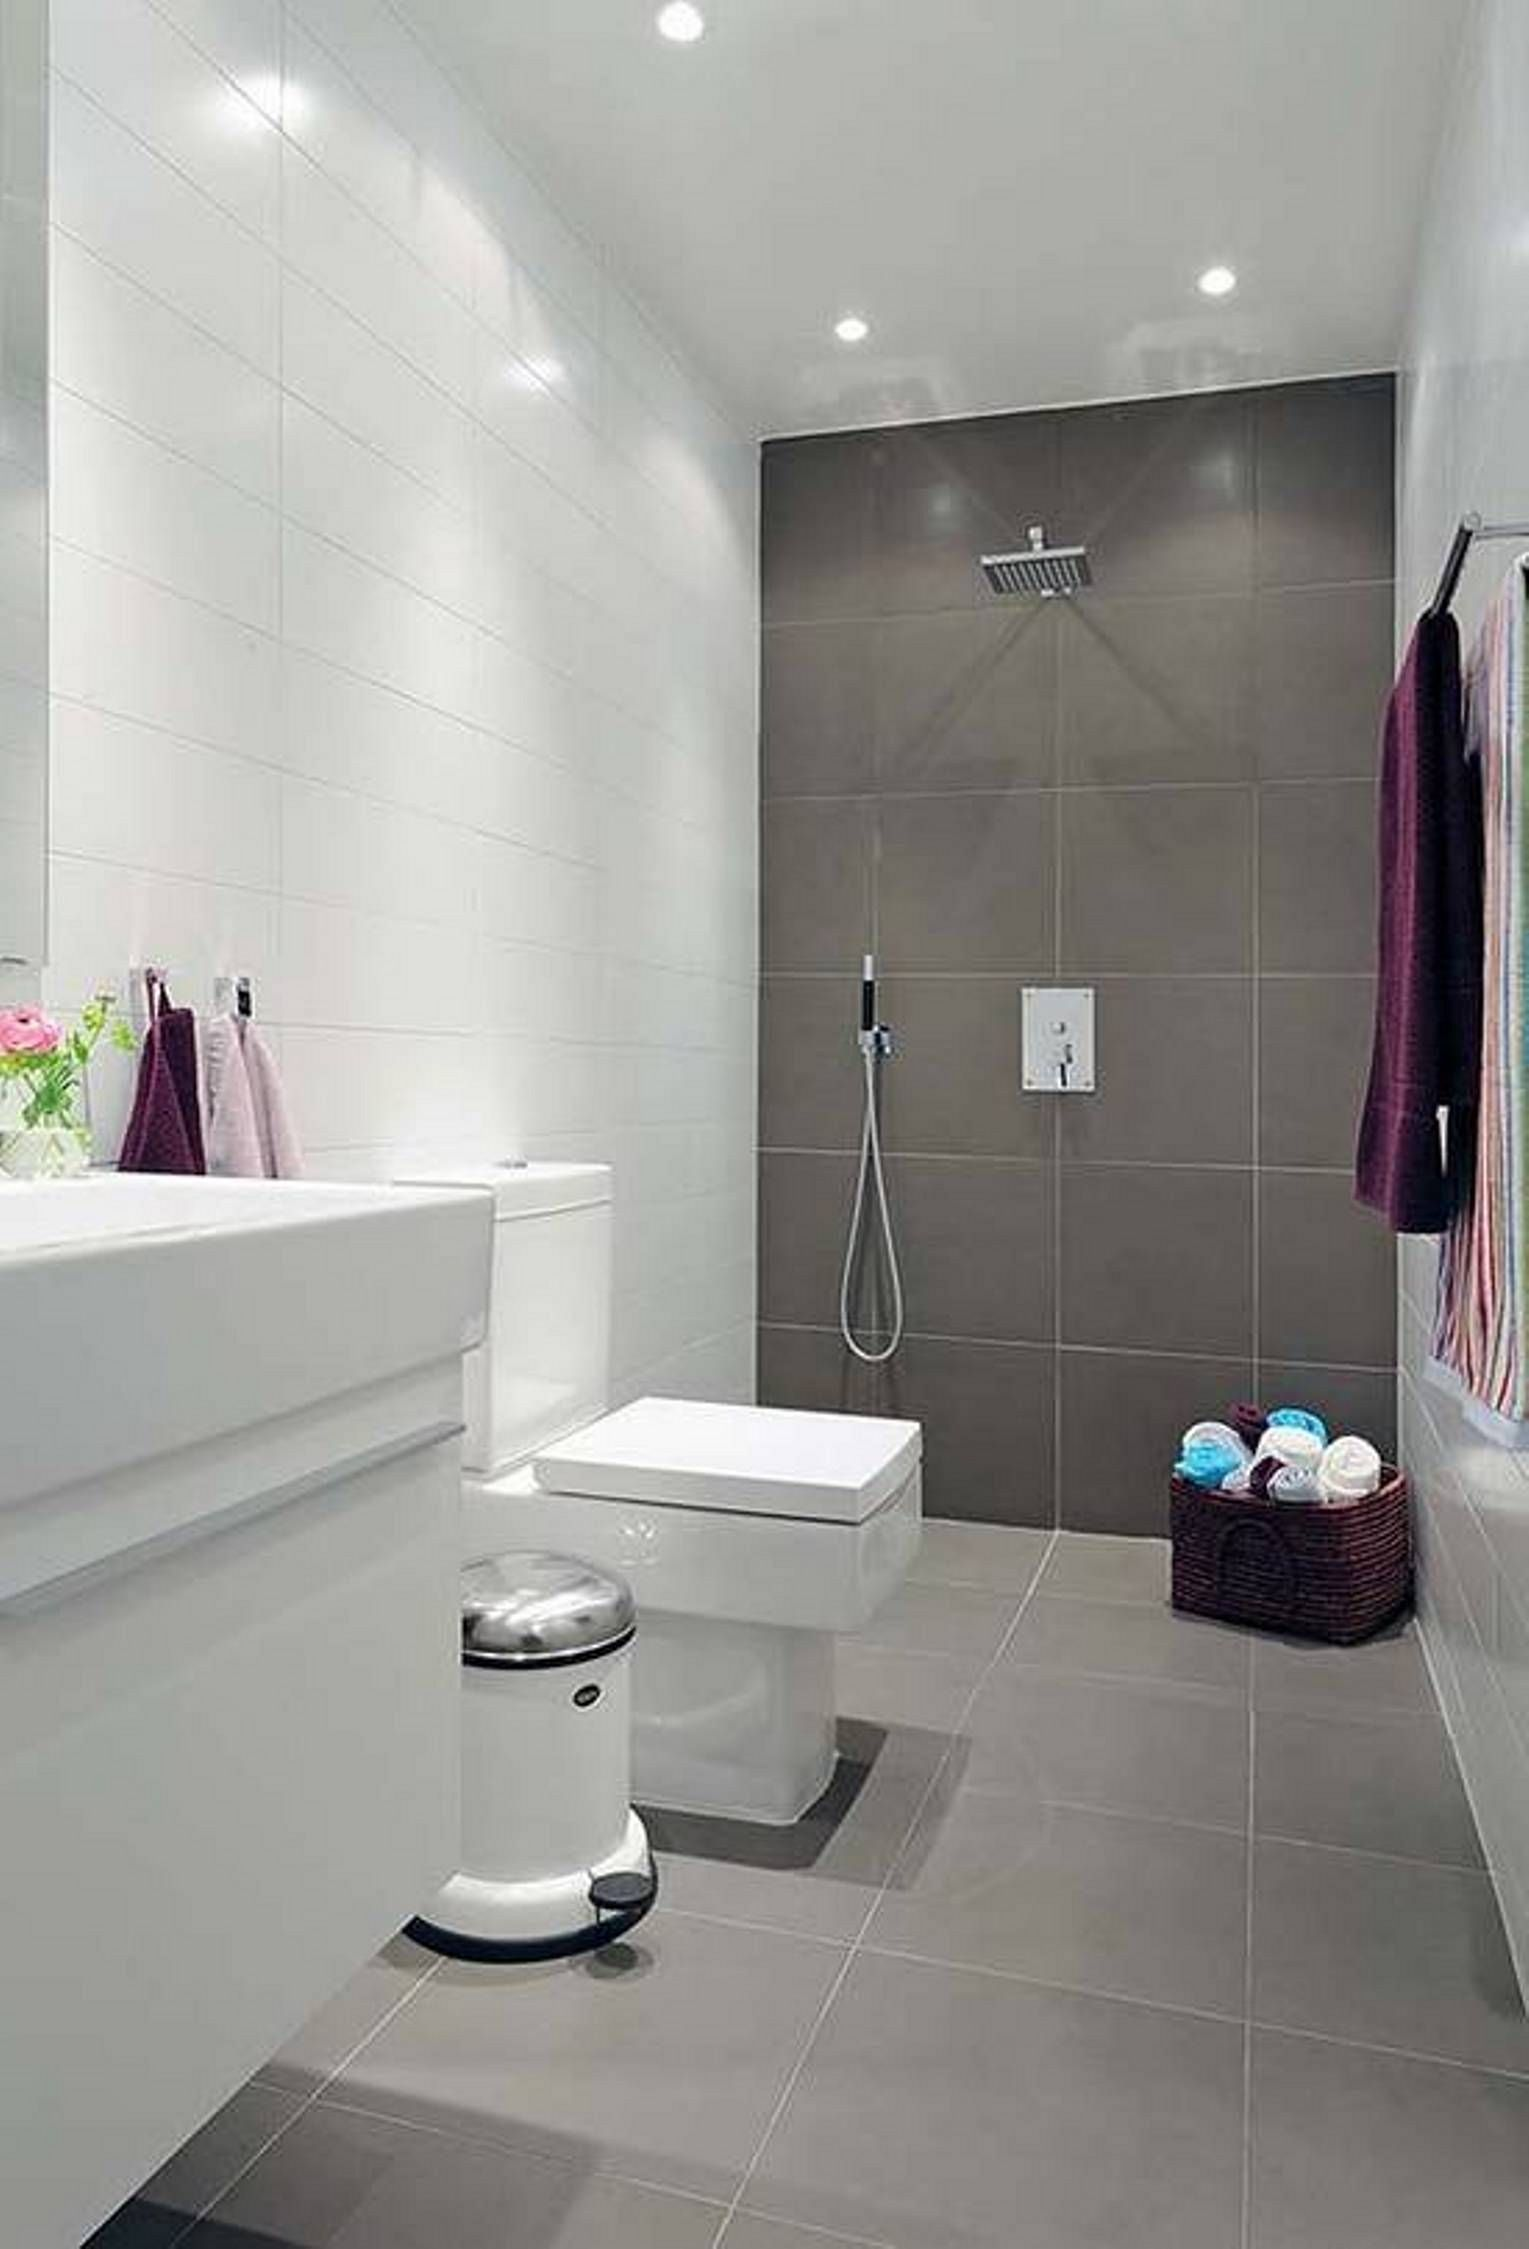 17 Wonderful Bathroom Design With Small Tile Ideas To Inspire You